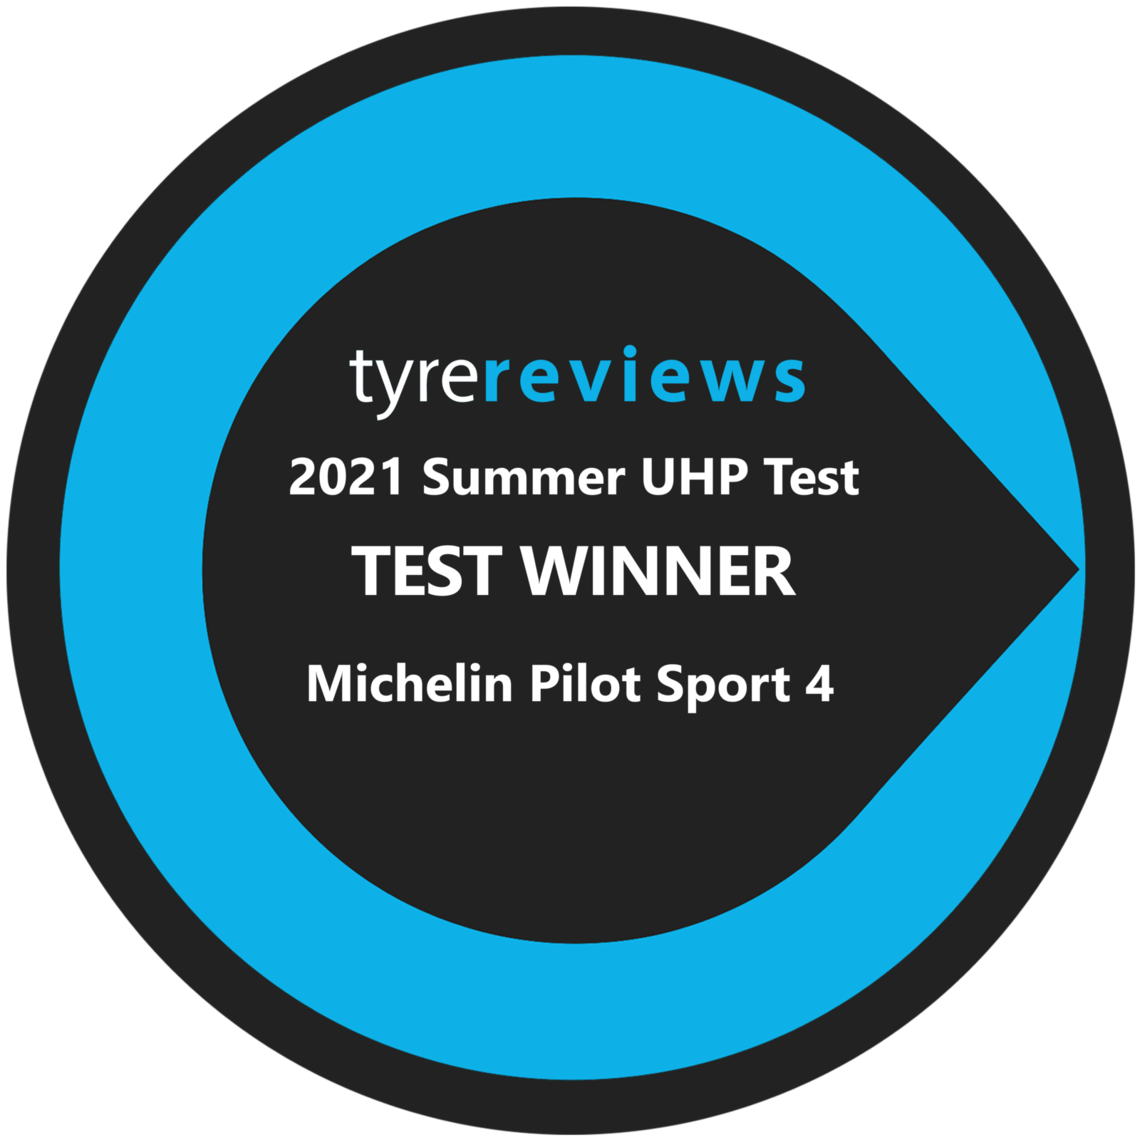 tyrereviews 2021